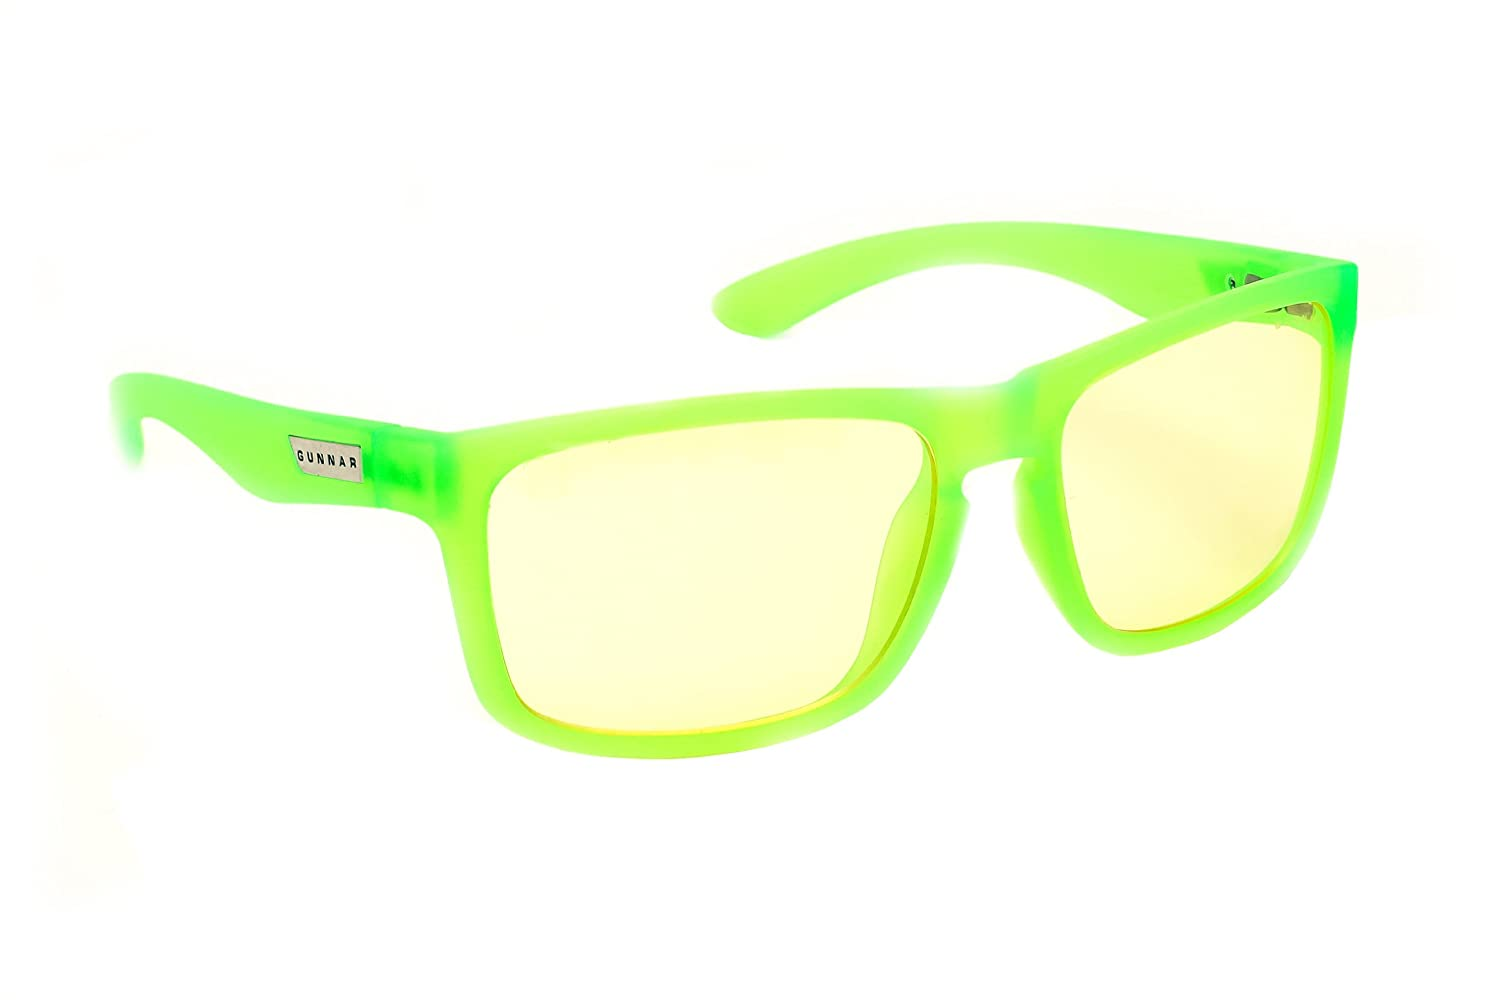 Gunnar Intercept Kryptonite Lunettes anti-fatigue visuelle Vert  Amazon.fr   Informatique 08e37a5c04e3